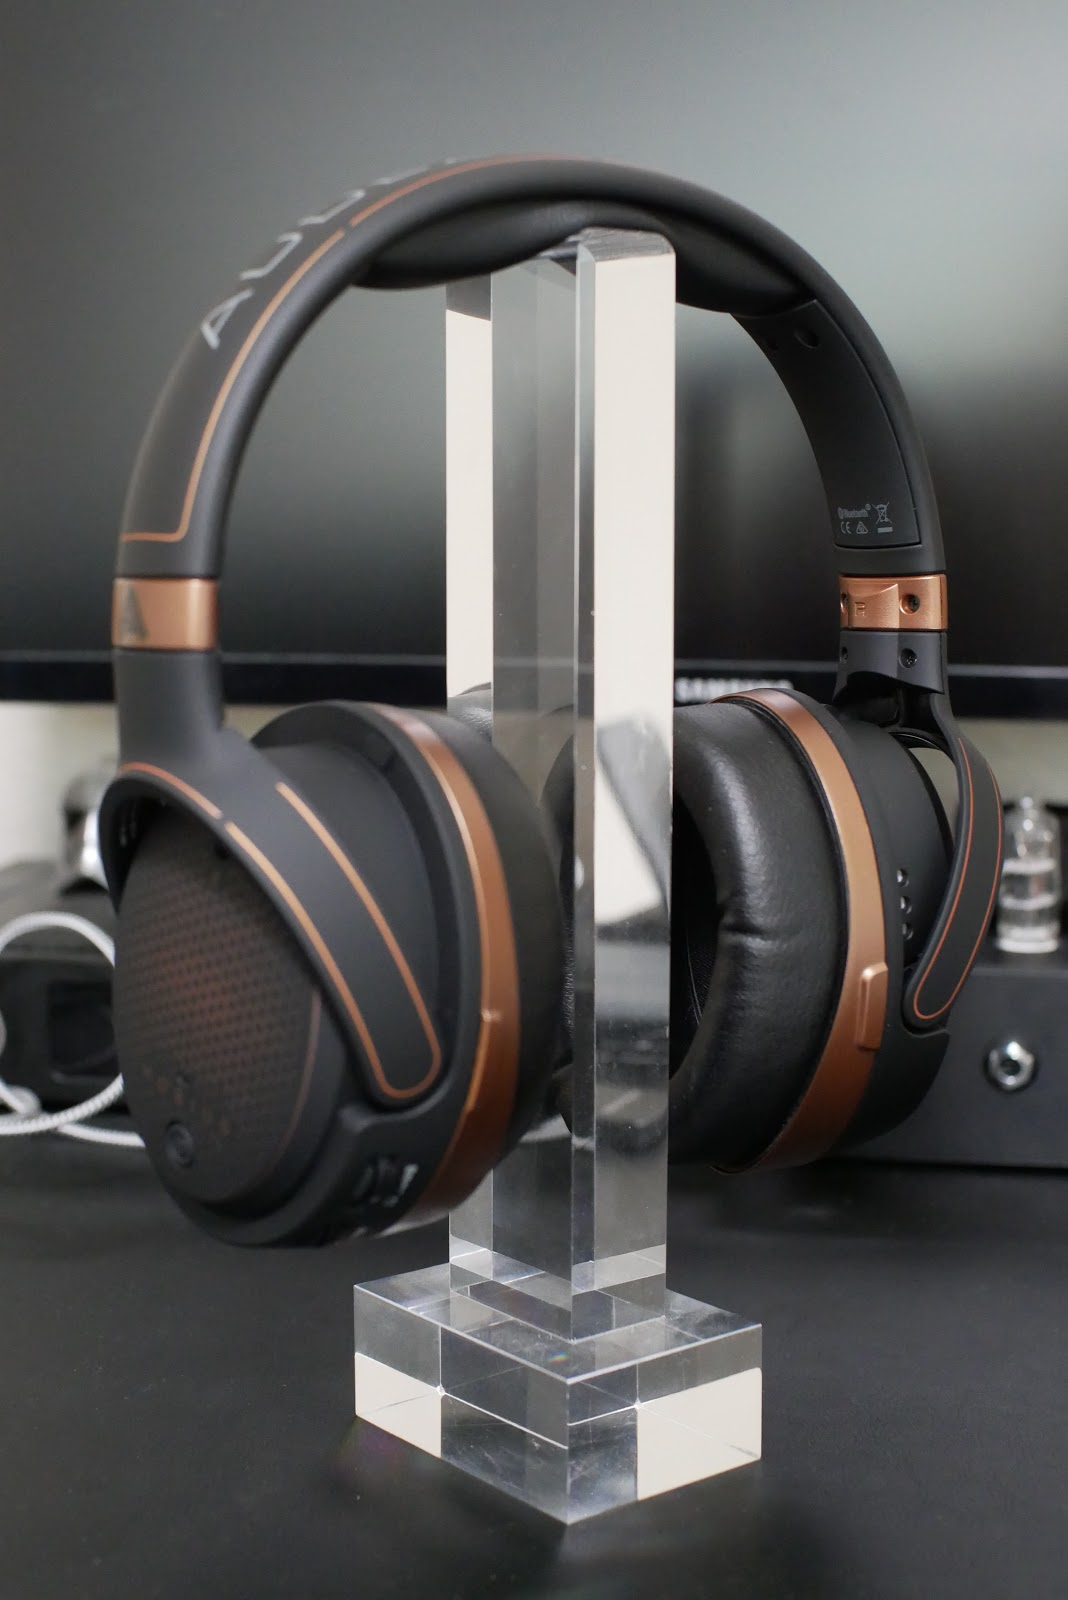 478ad1a8fd4 Audeze has become as household name in the audiophile headphone world with  their high quality planar magnetic driver line of headphones.